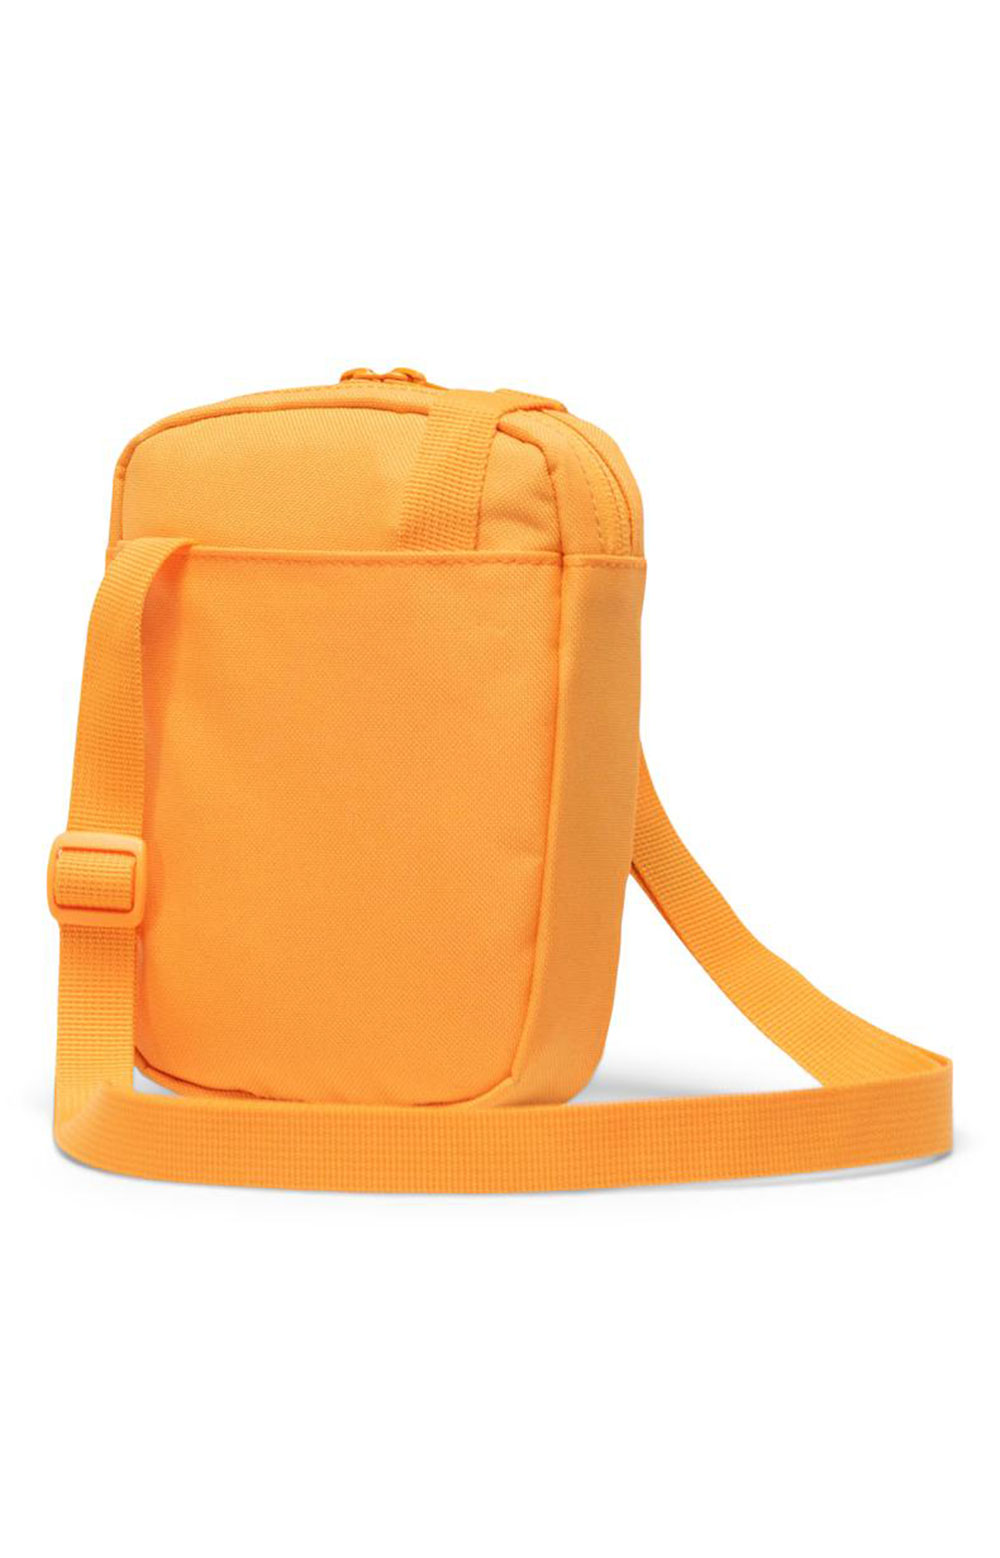 Cruz Crossbody Bag - Blazing Orange  3